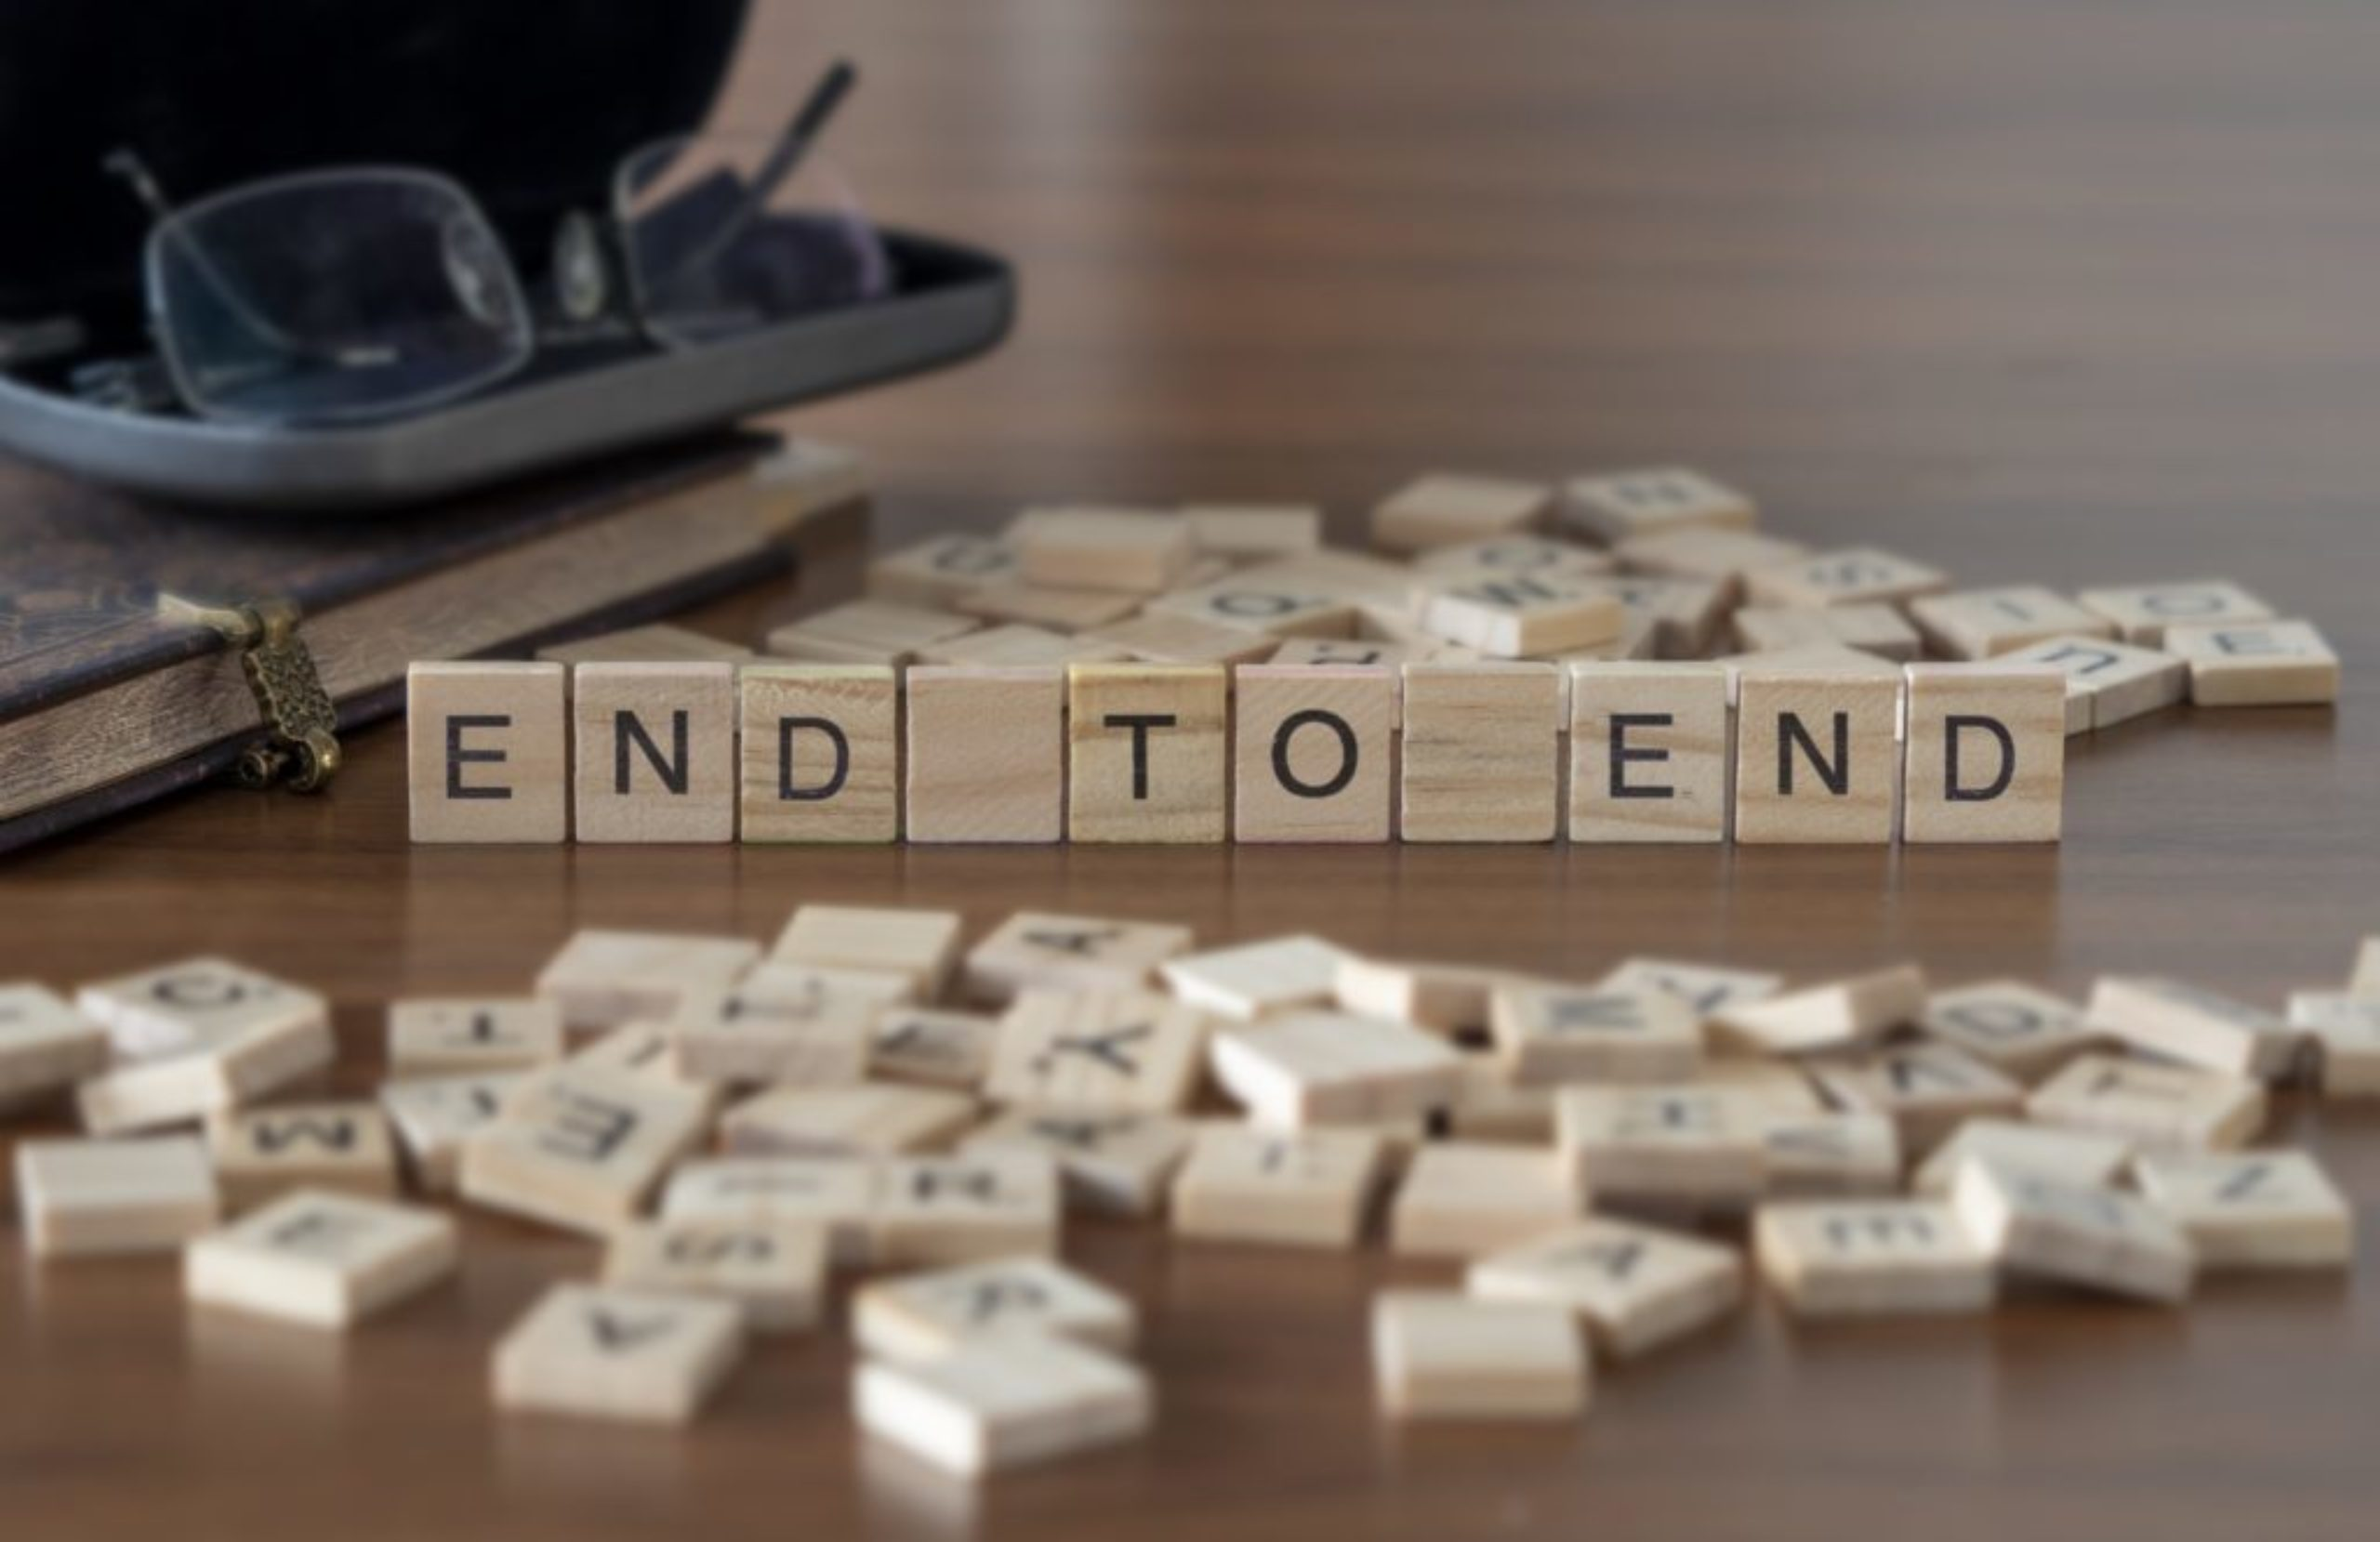 End To End the word or concept represented by wooden letter tiles